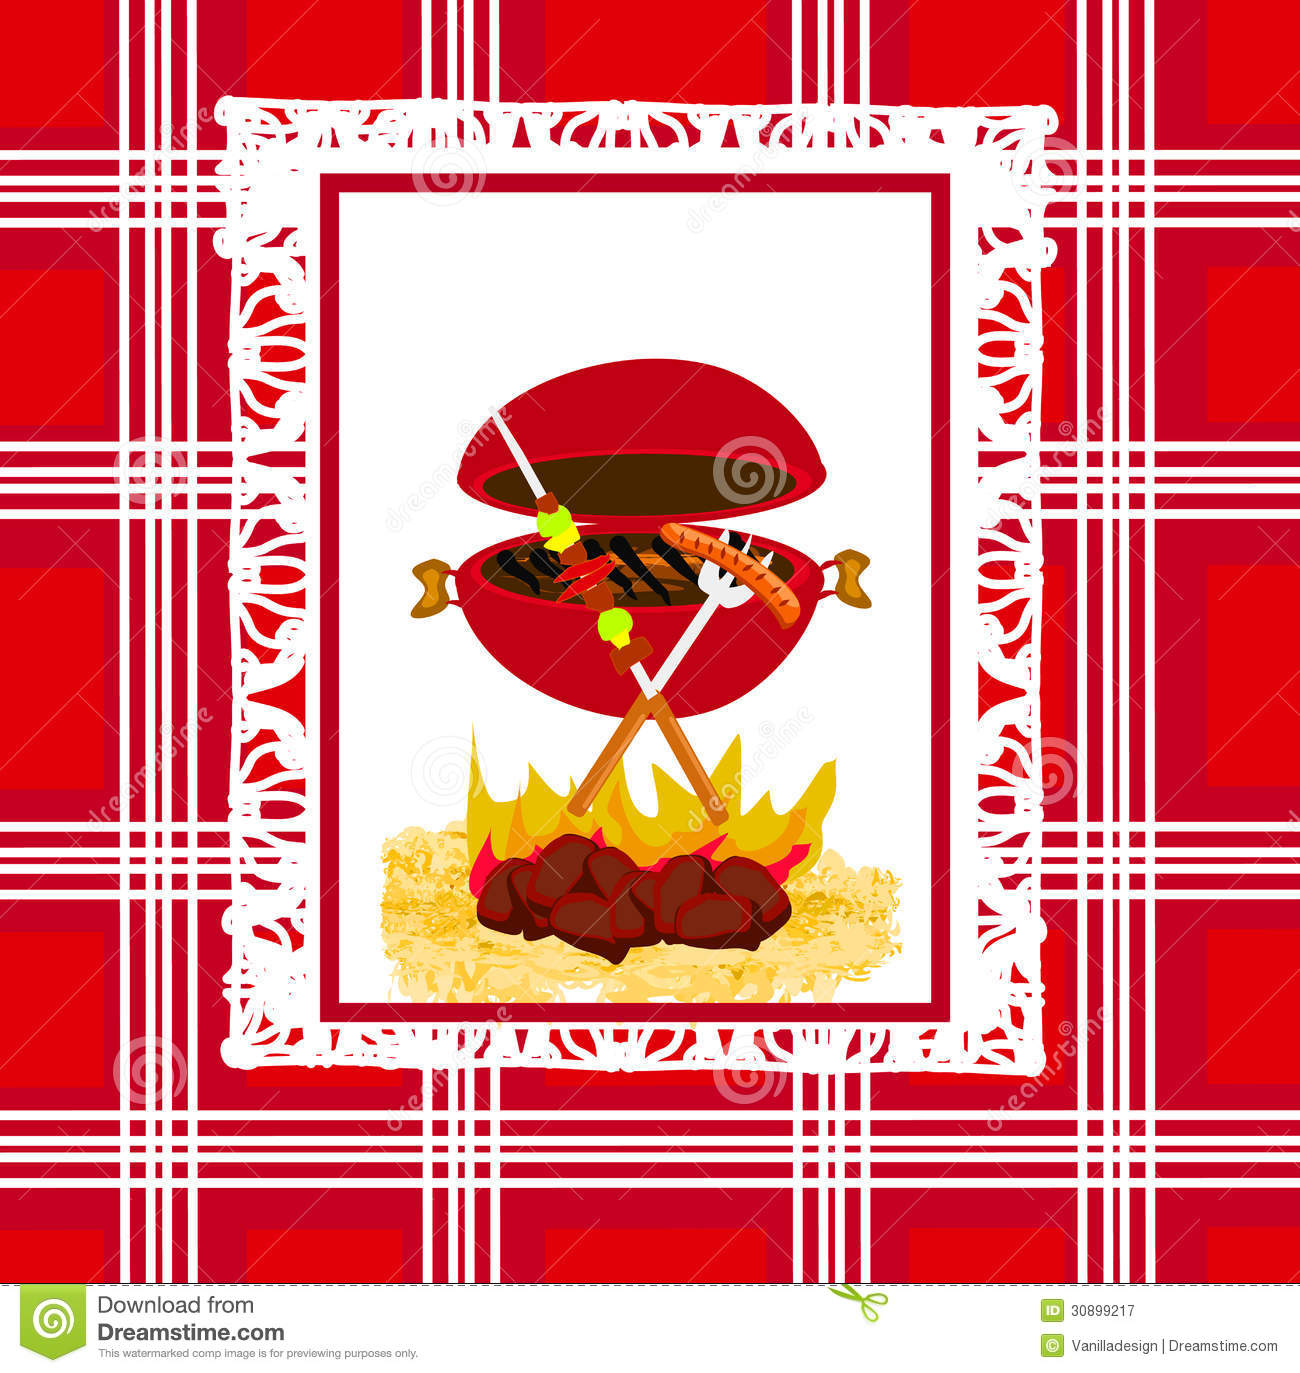 Barbecue Party Invitation Royalty Free Stock Photography - Image ...